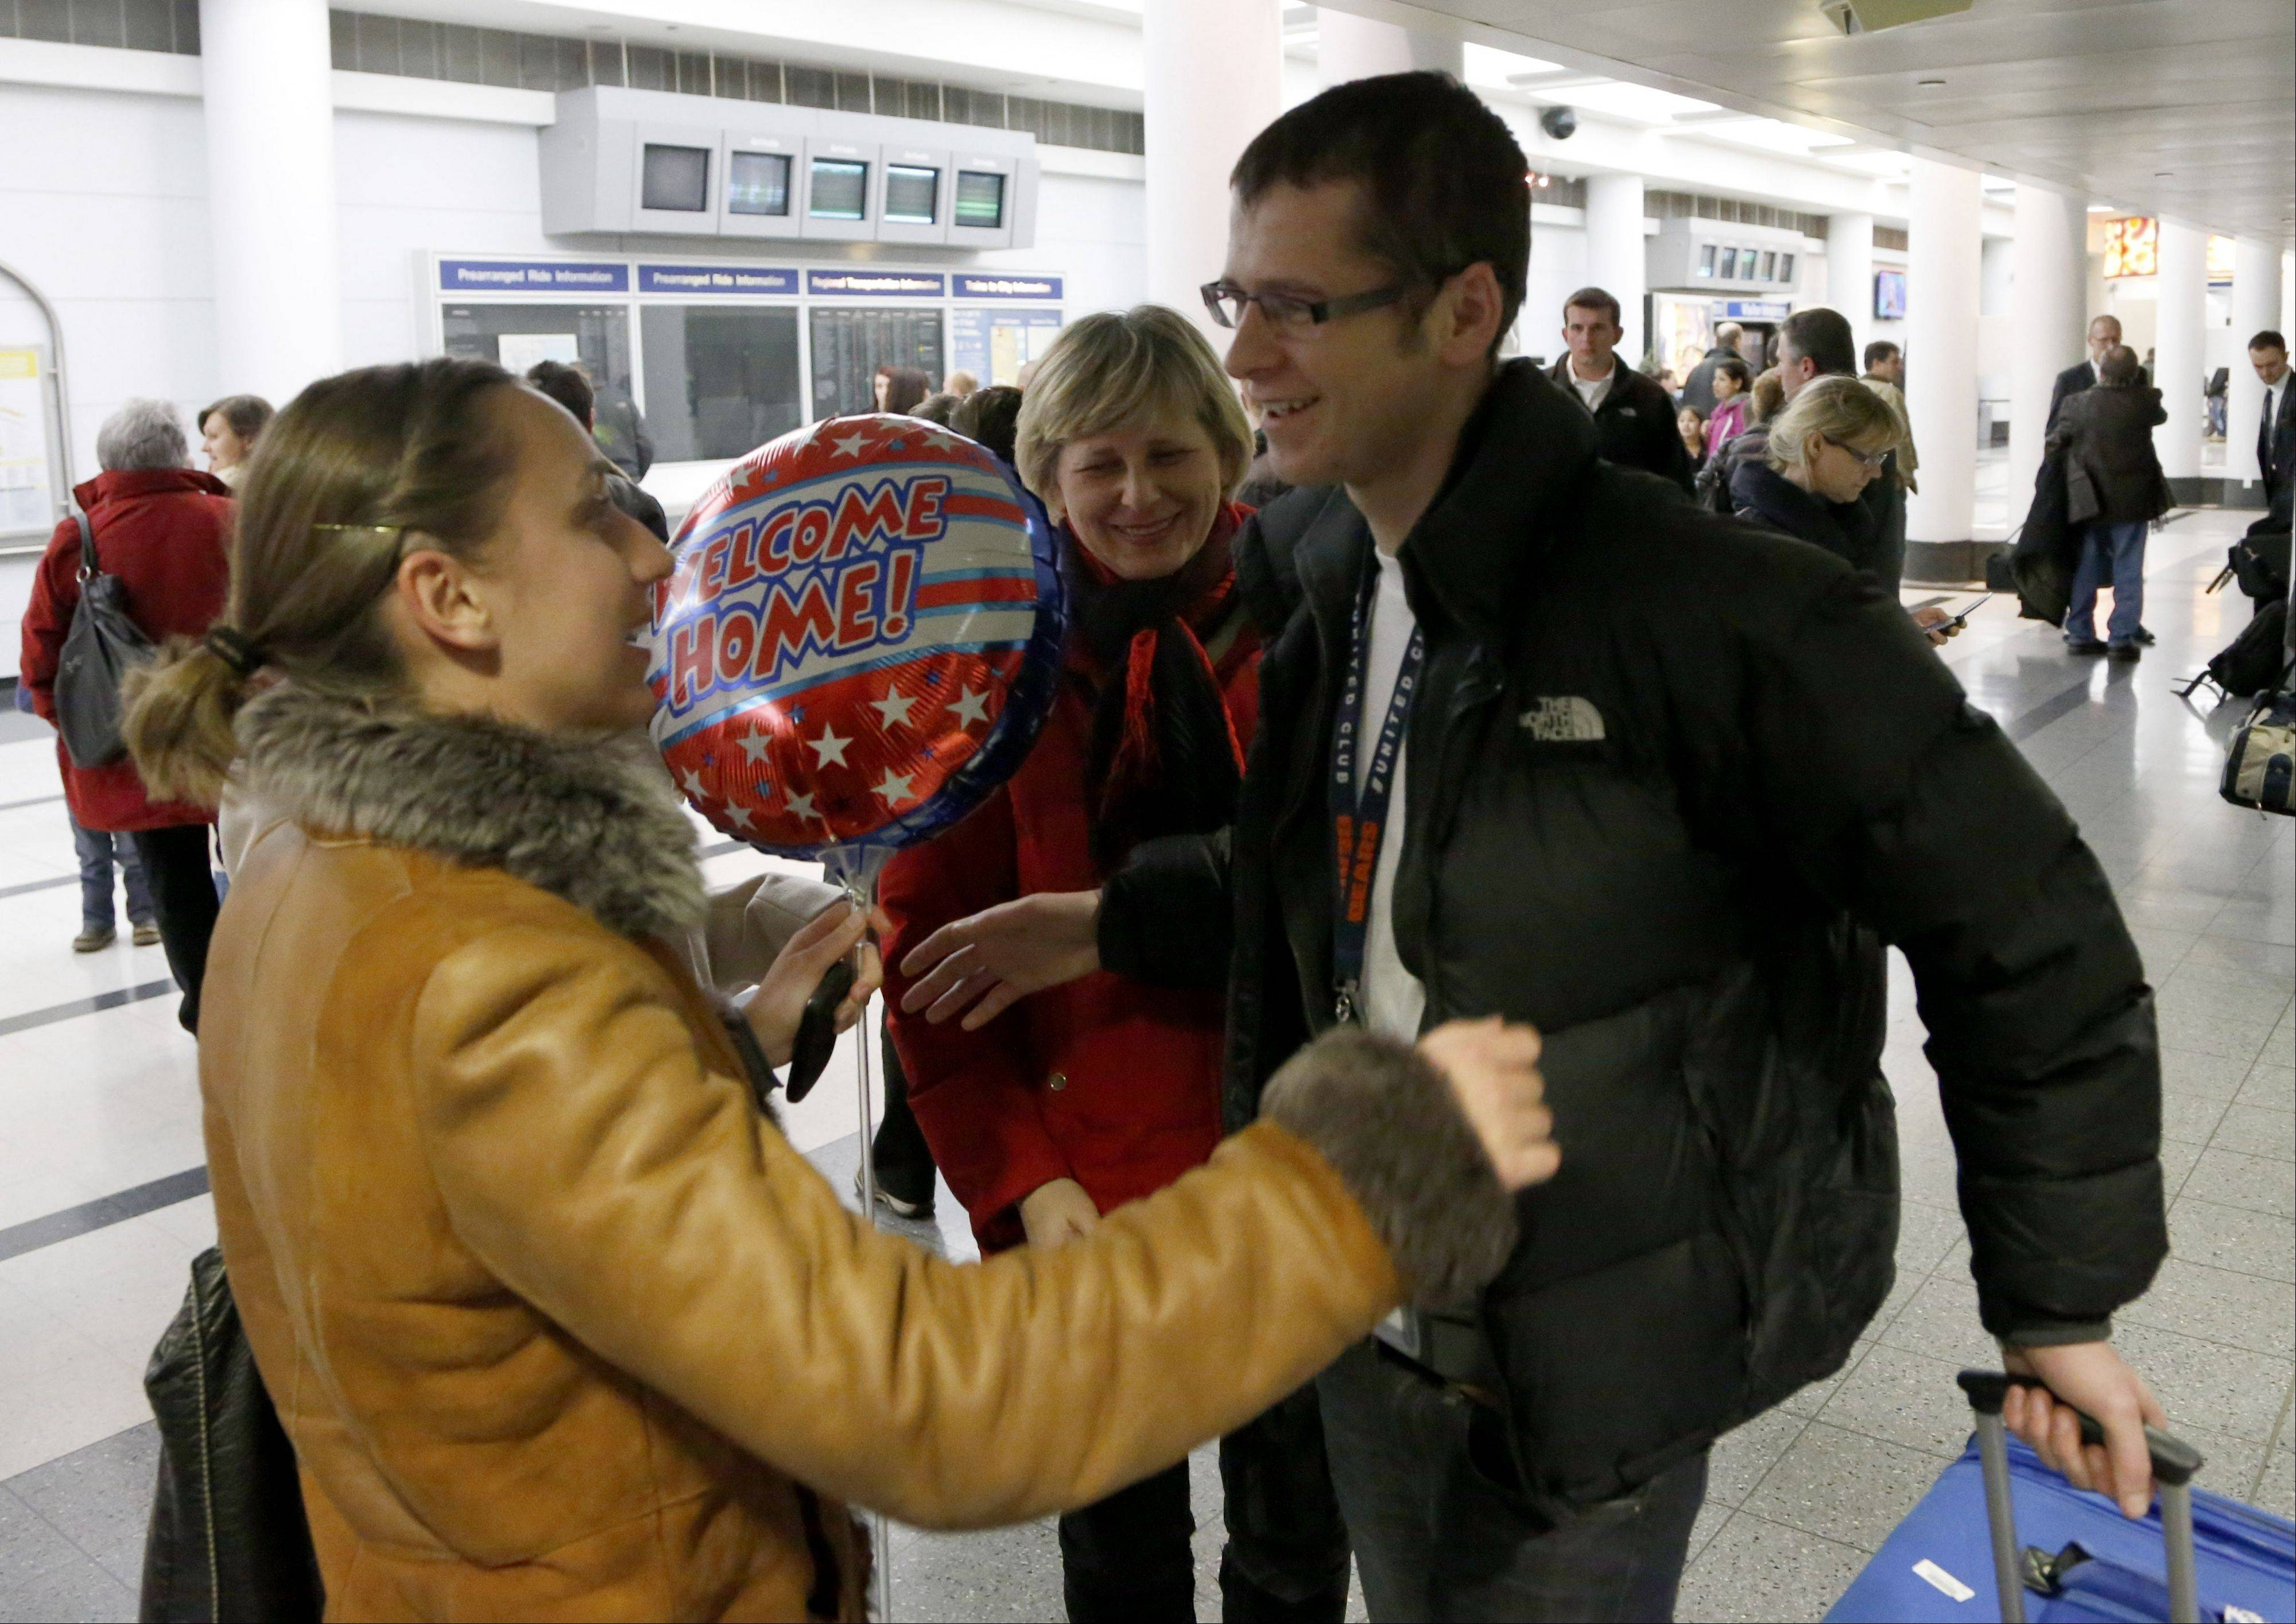 Alla Dziuma, left greets her brother Taras Dukyn after he arrived on Polish Airlines flight 003 from Warsaw, a Boeing 787, after their arrival at O'Hare International Airport.